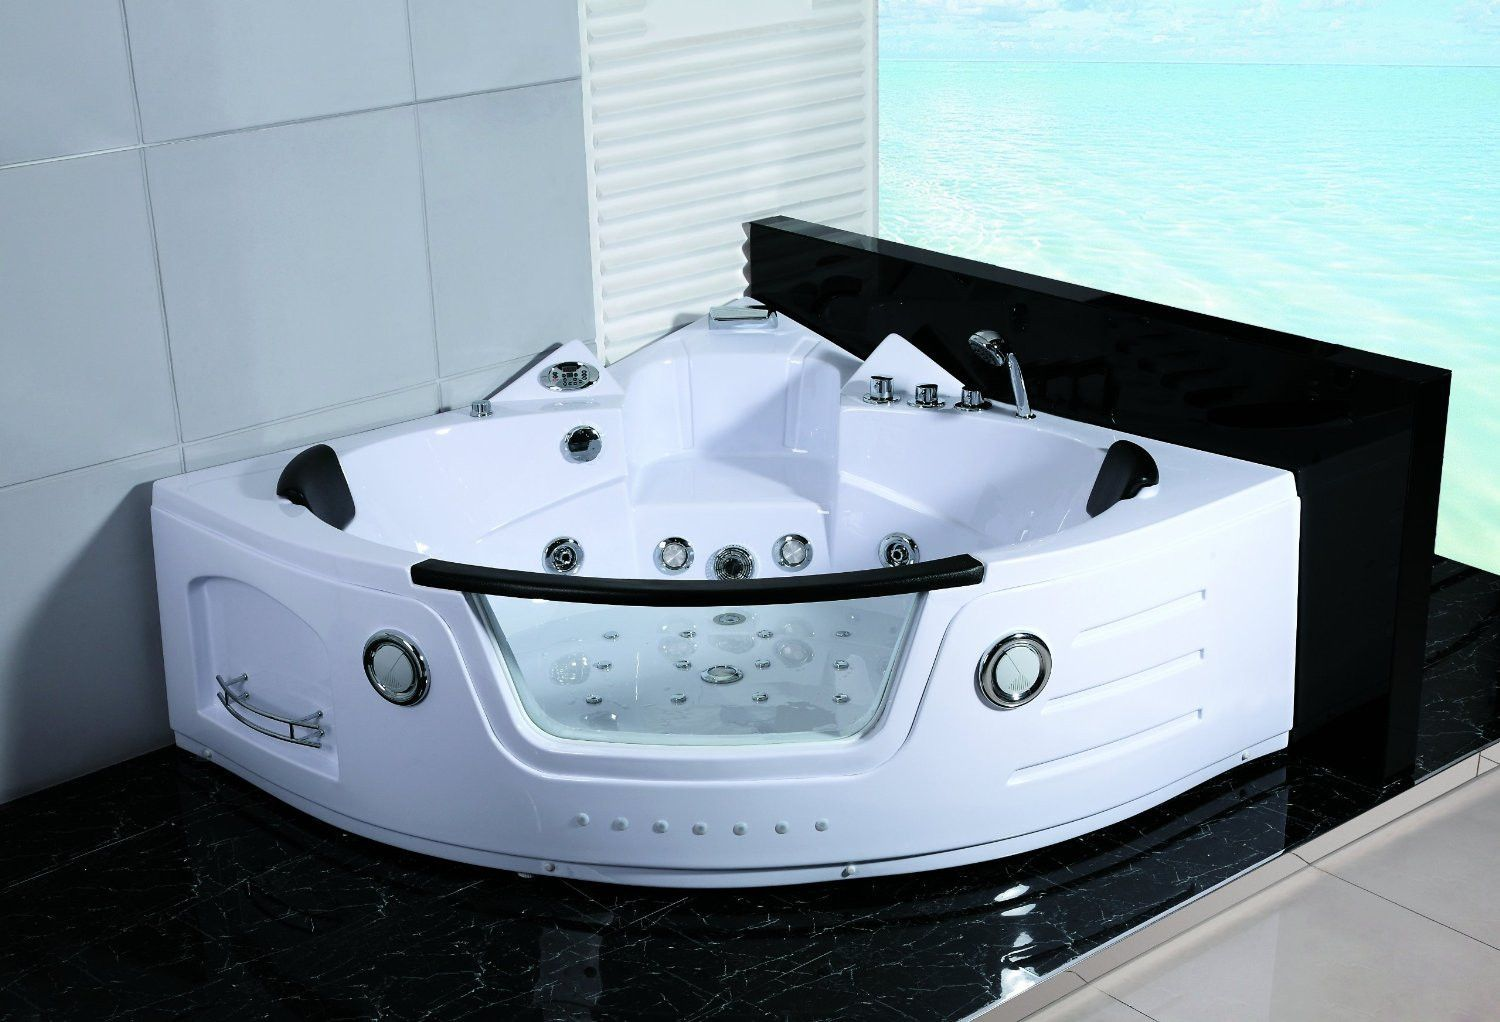 NEW - Deluxe Computerized Whirlpool Jacuzzi Hot Tub (White) Model ...